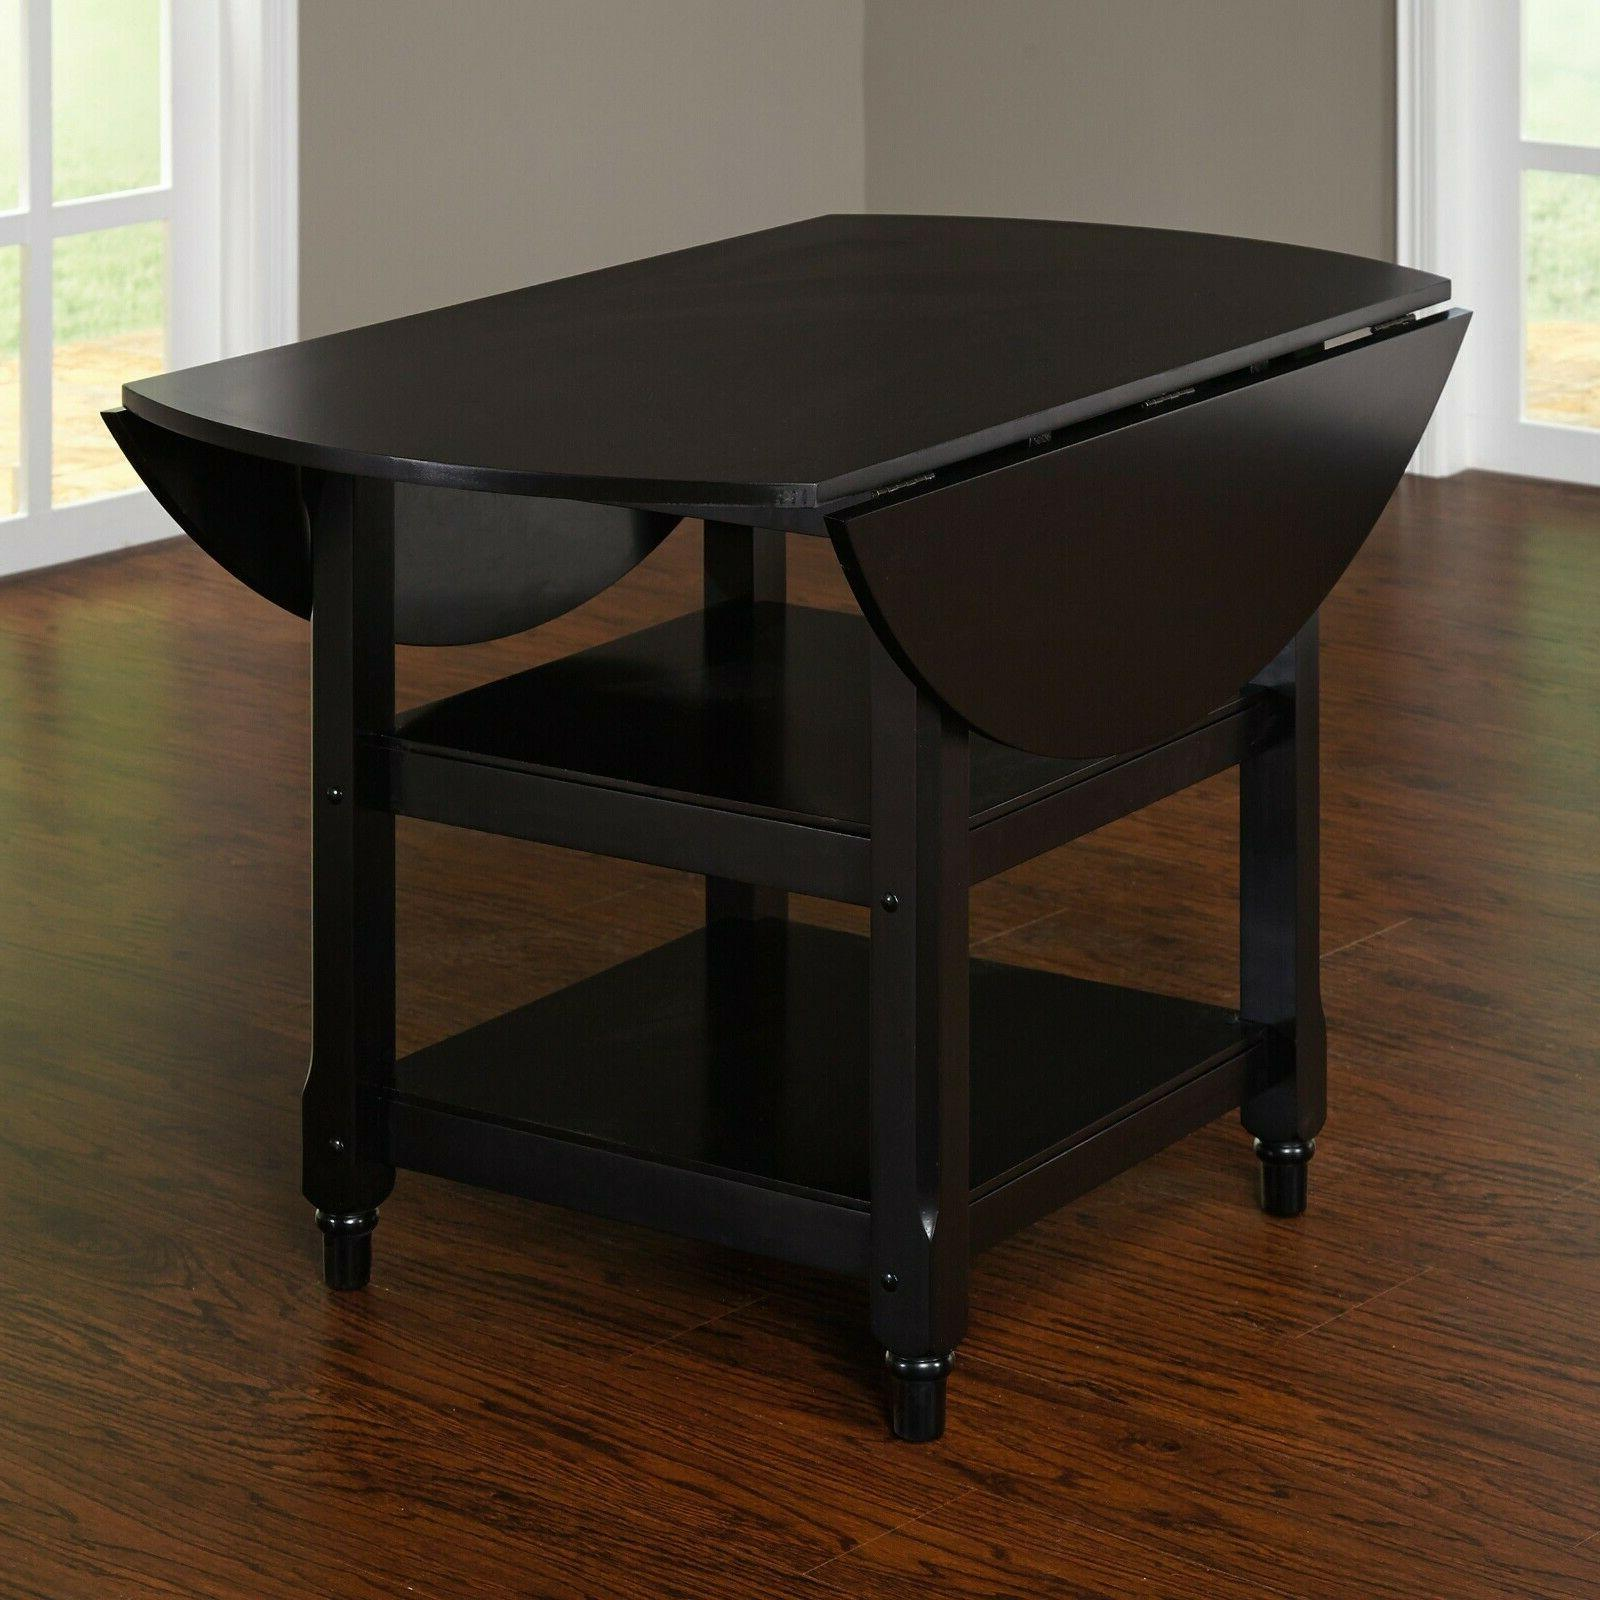 Simple Living Table 60147blk 1